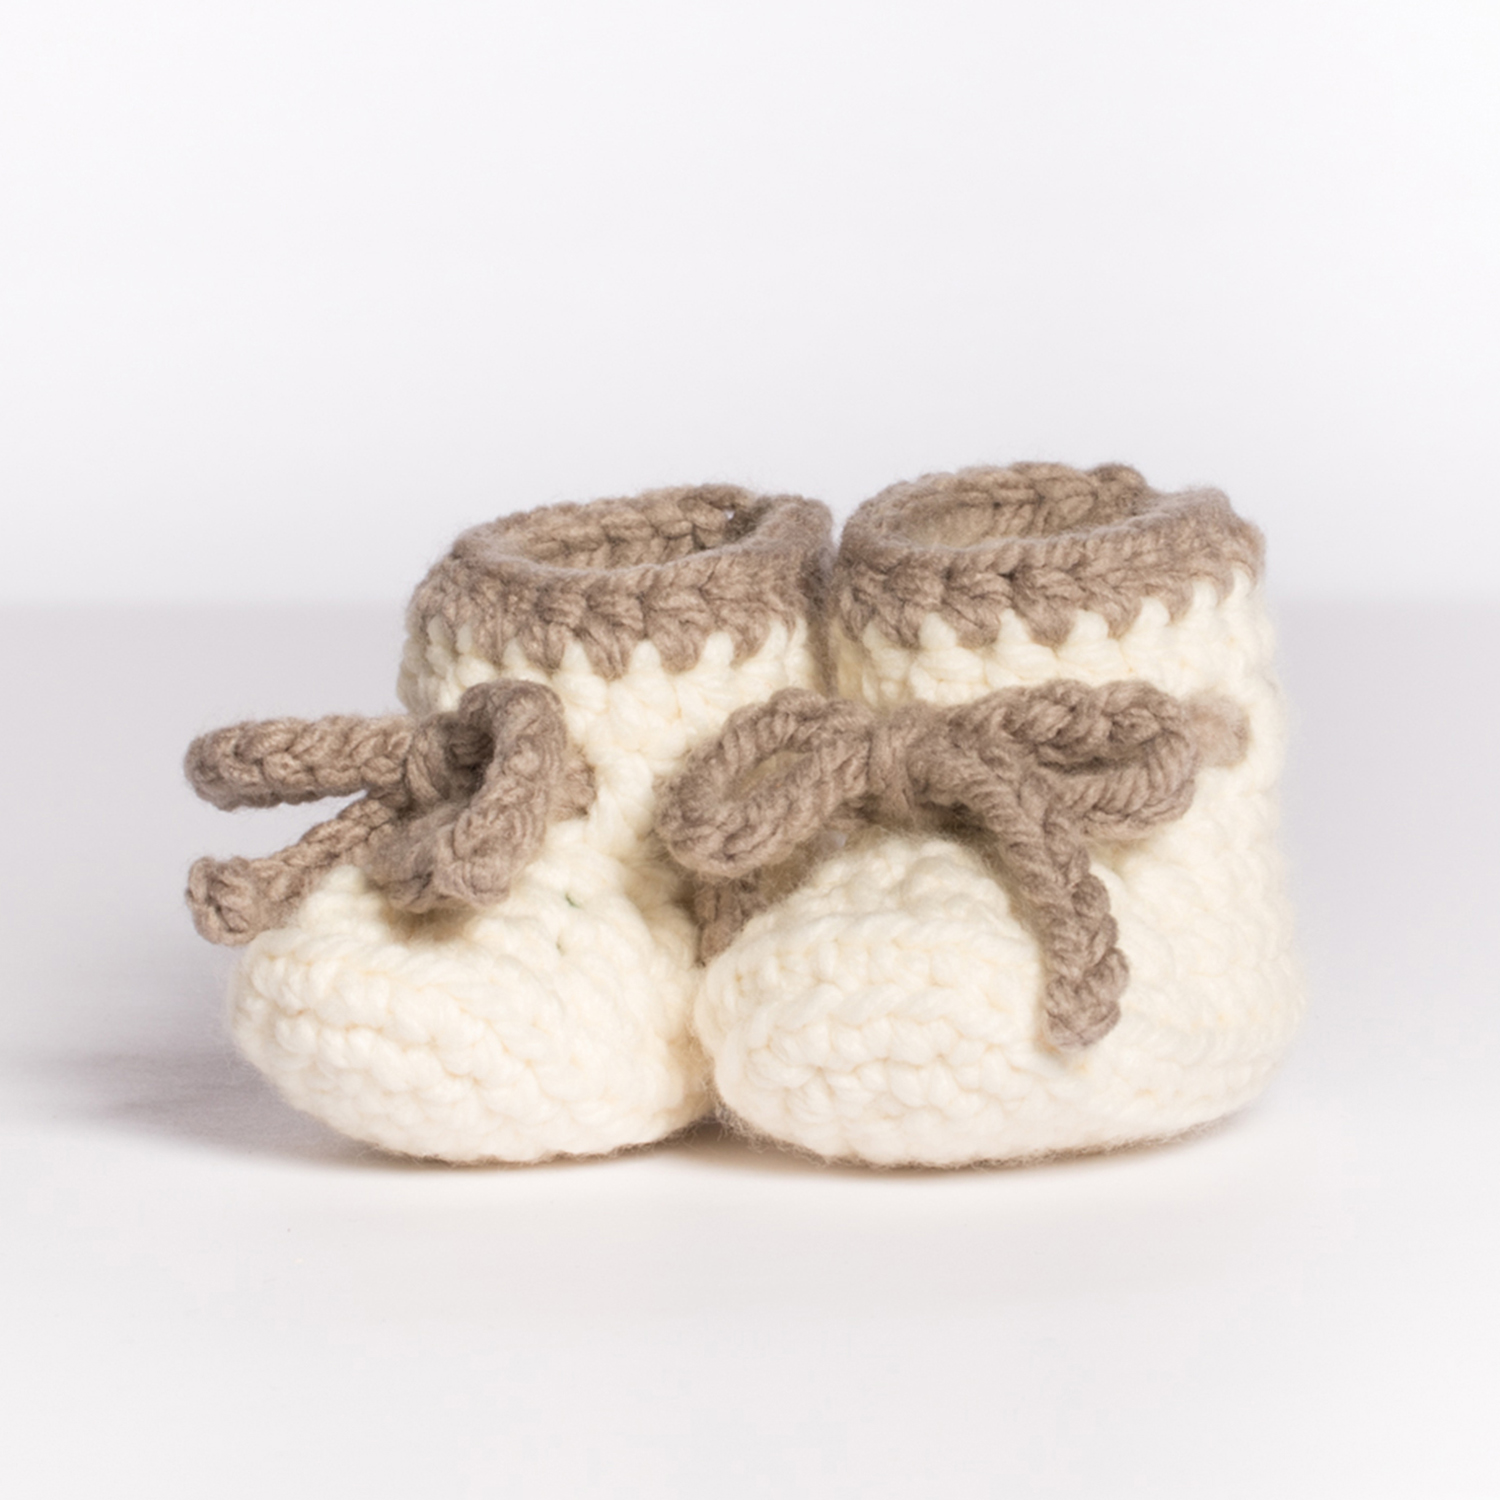 BABY BOOTIES PRODUCT PHOTOGRAPHY